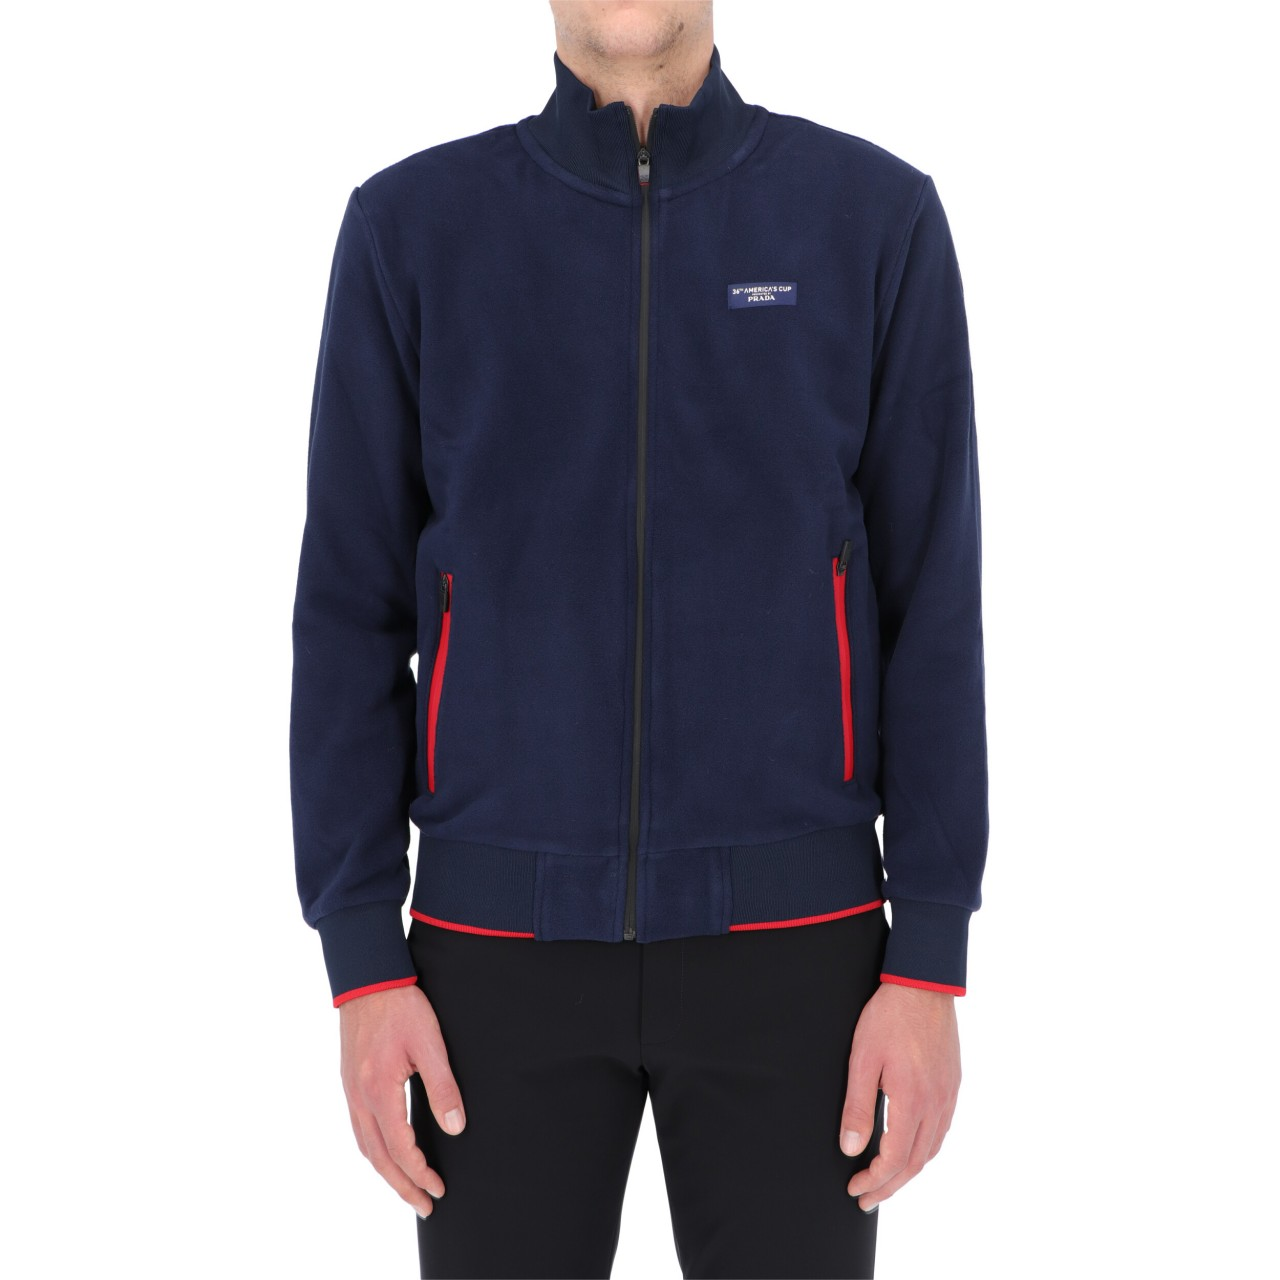 North sails x prada Uomo Felpa North Sails Prada Uomo Kurow Coppa America Zip KUROWO